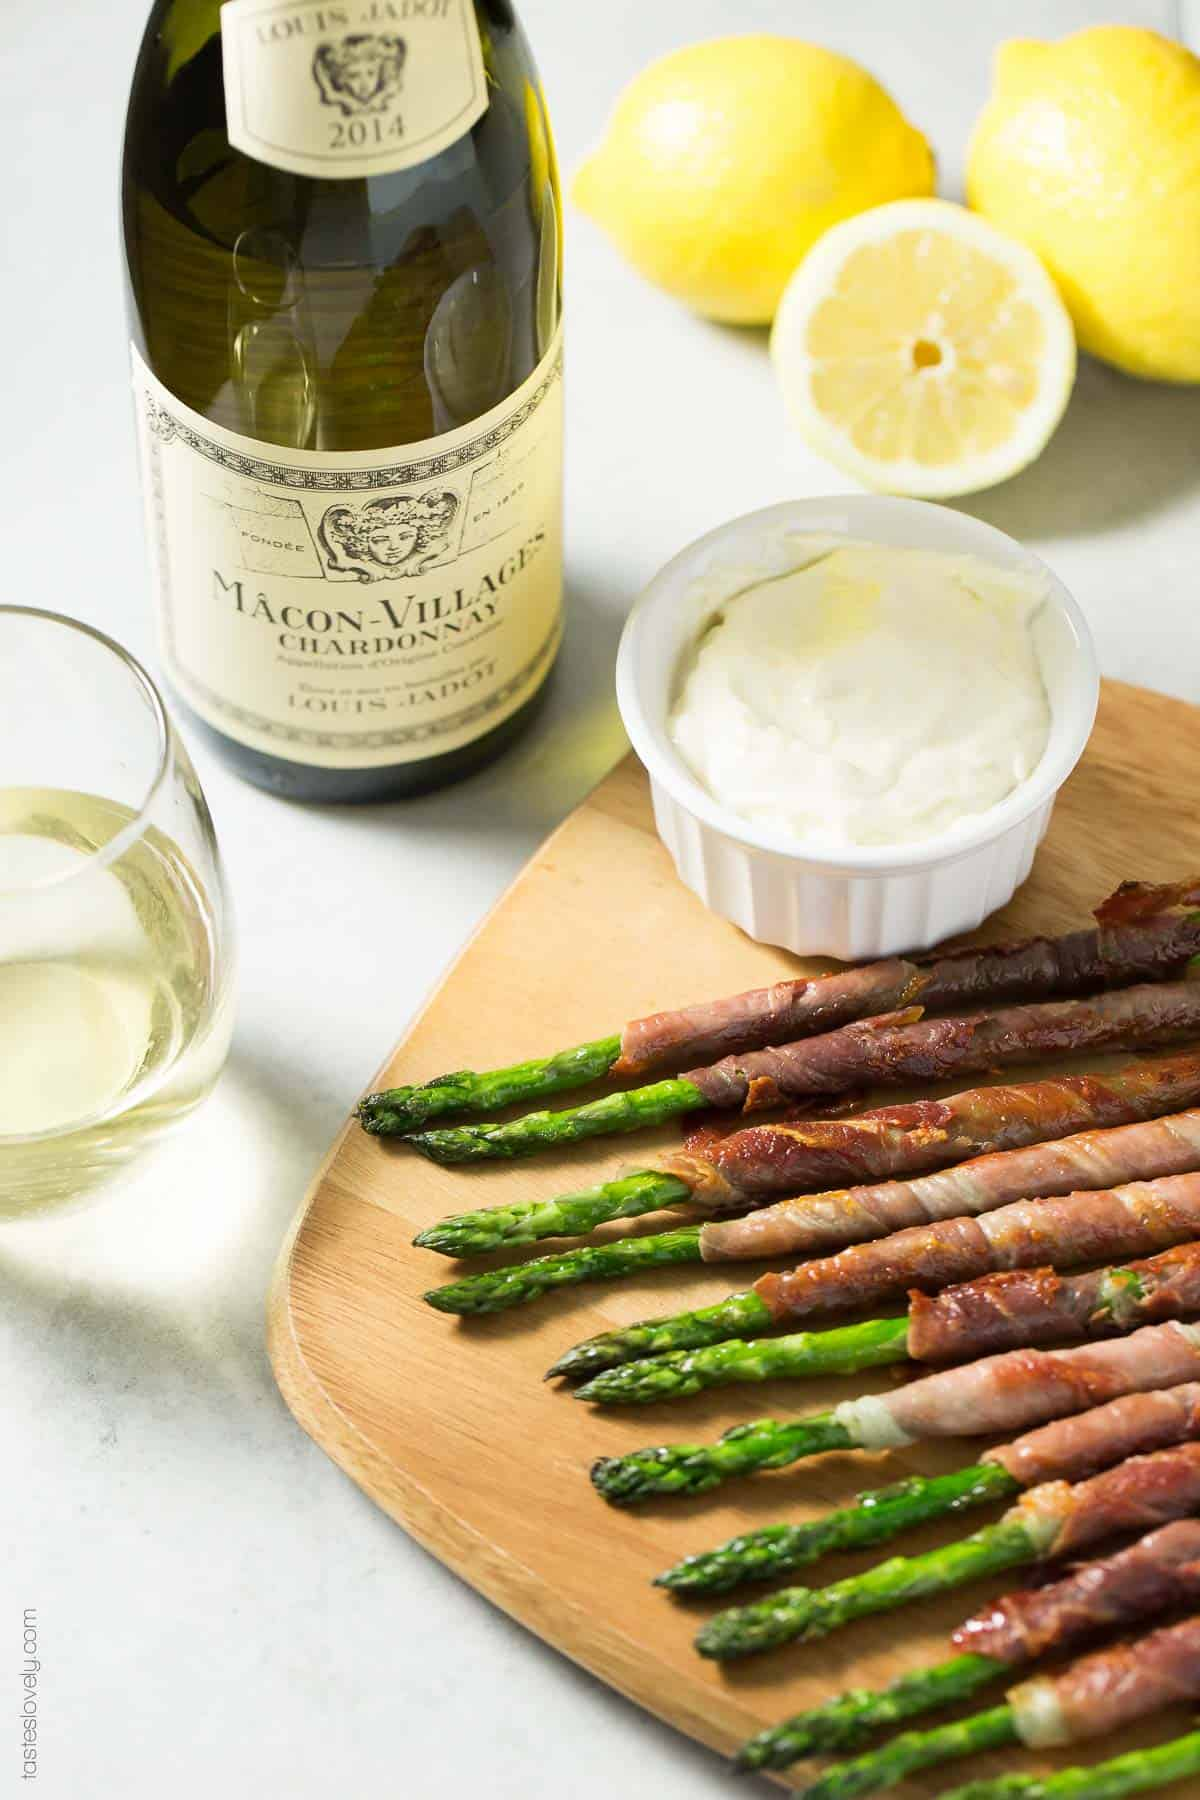 Paleo Prosciutto Wrapped Asparagus appetizer with lemon garlic aioli (paleo, gluten free, whole30, low carb)